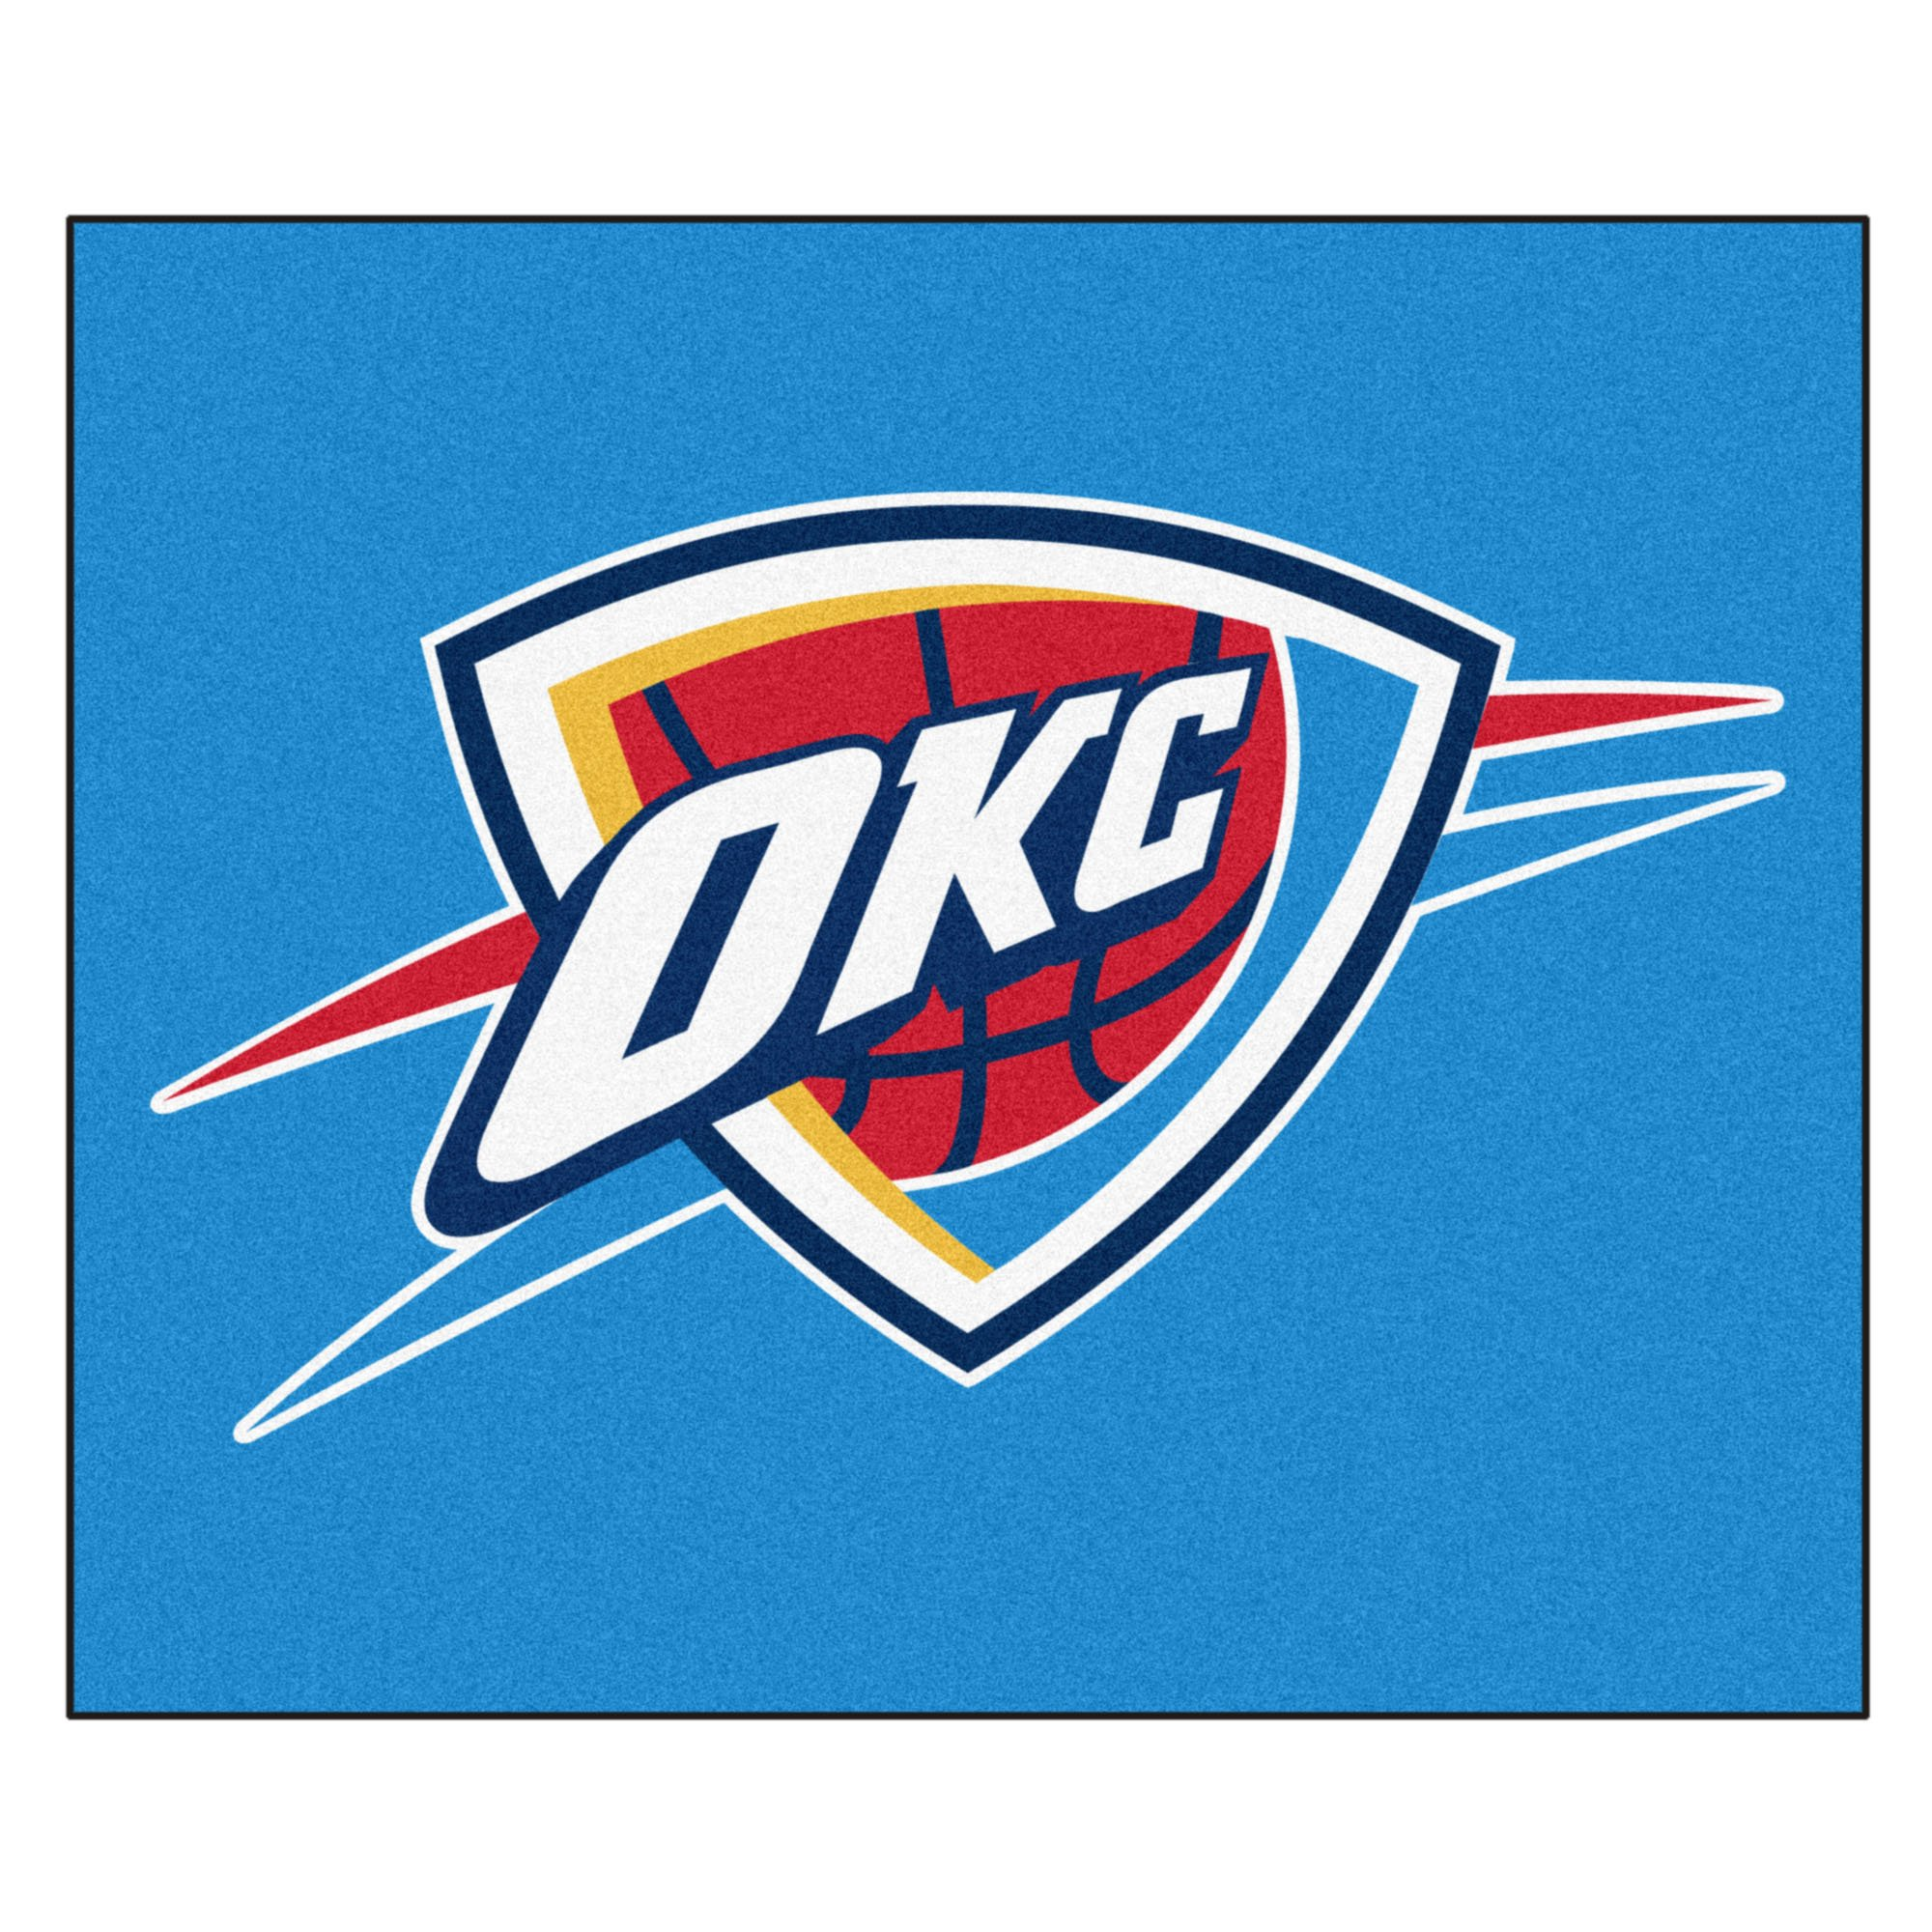 FANMATS 19464 NBA - Oklahoma City Thunder Tailgater Rug , Team Color, 59.5''x71'' by Fanmats